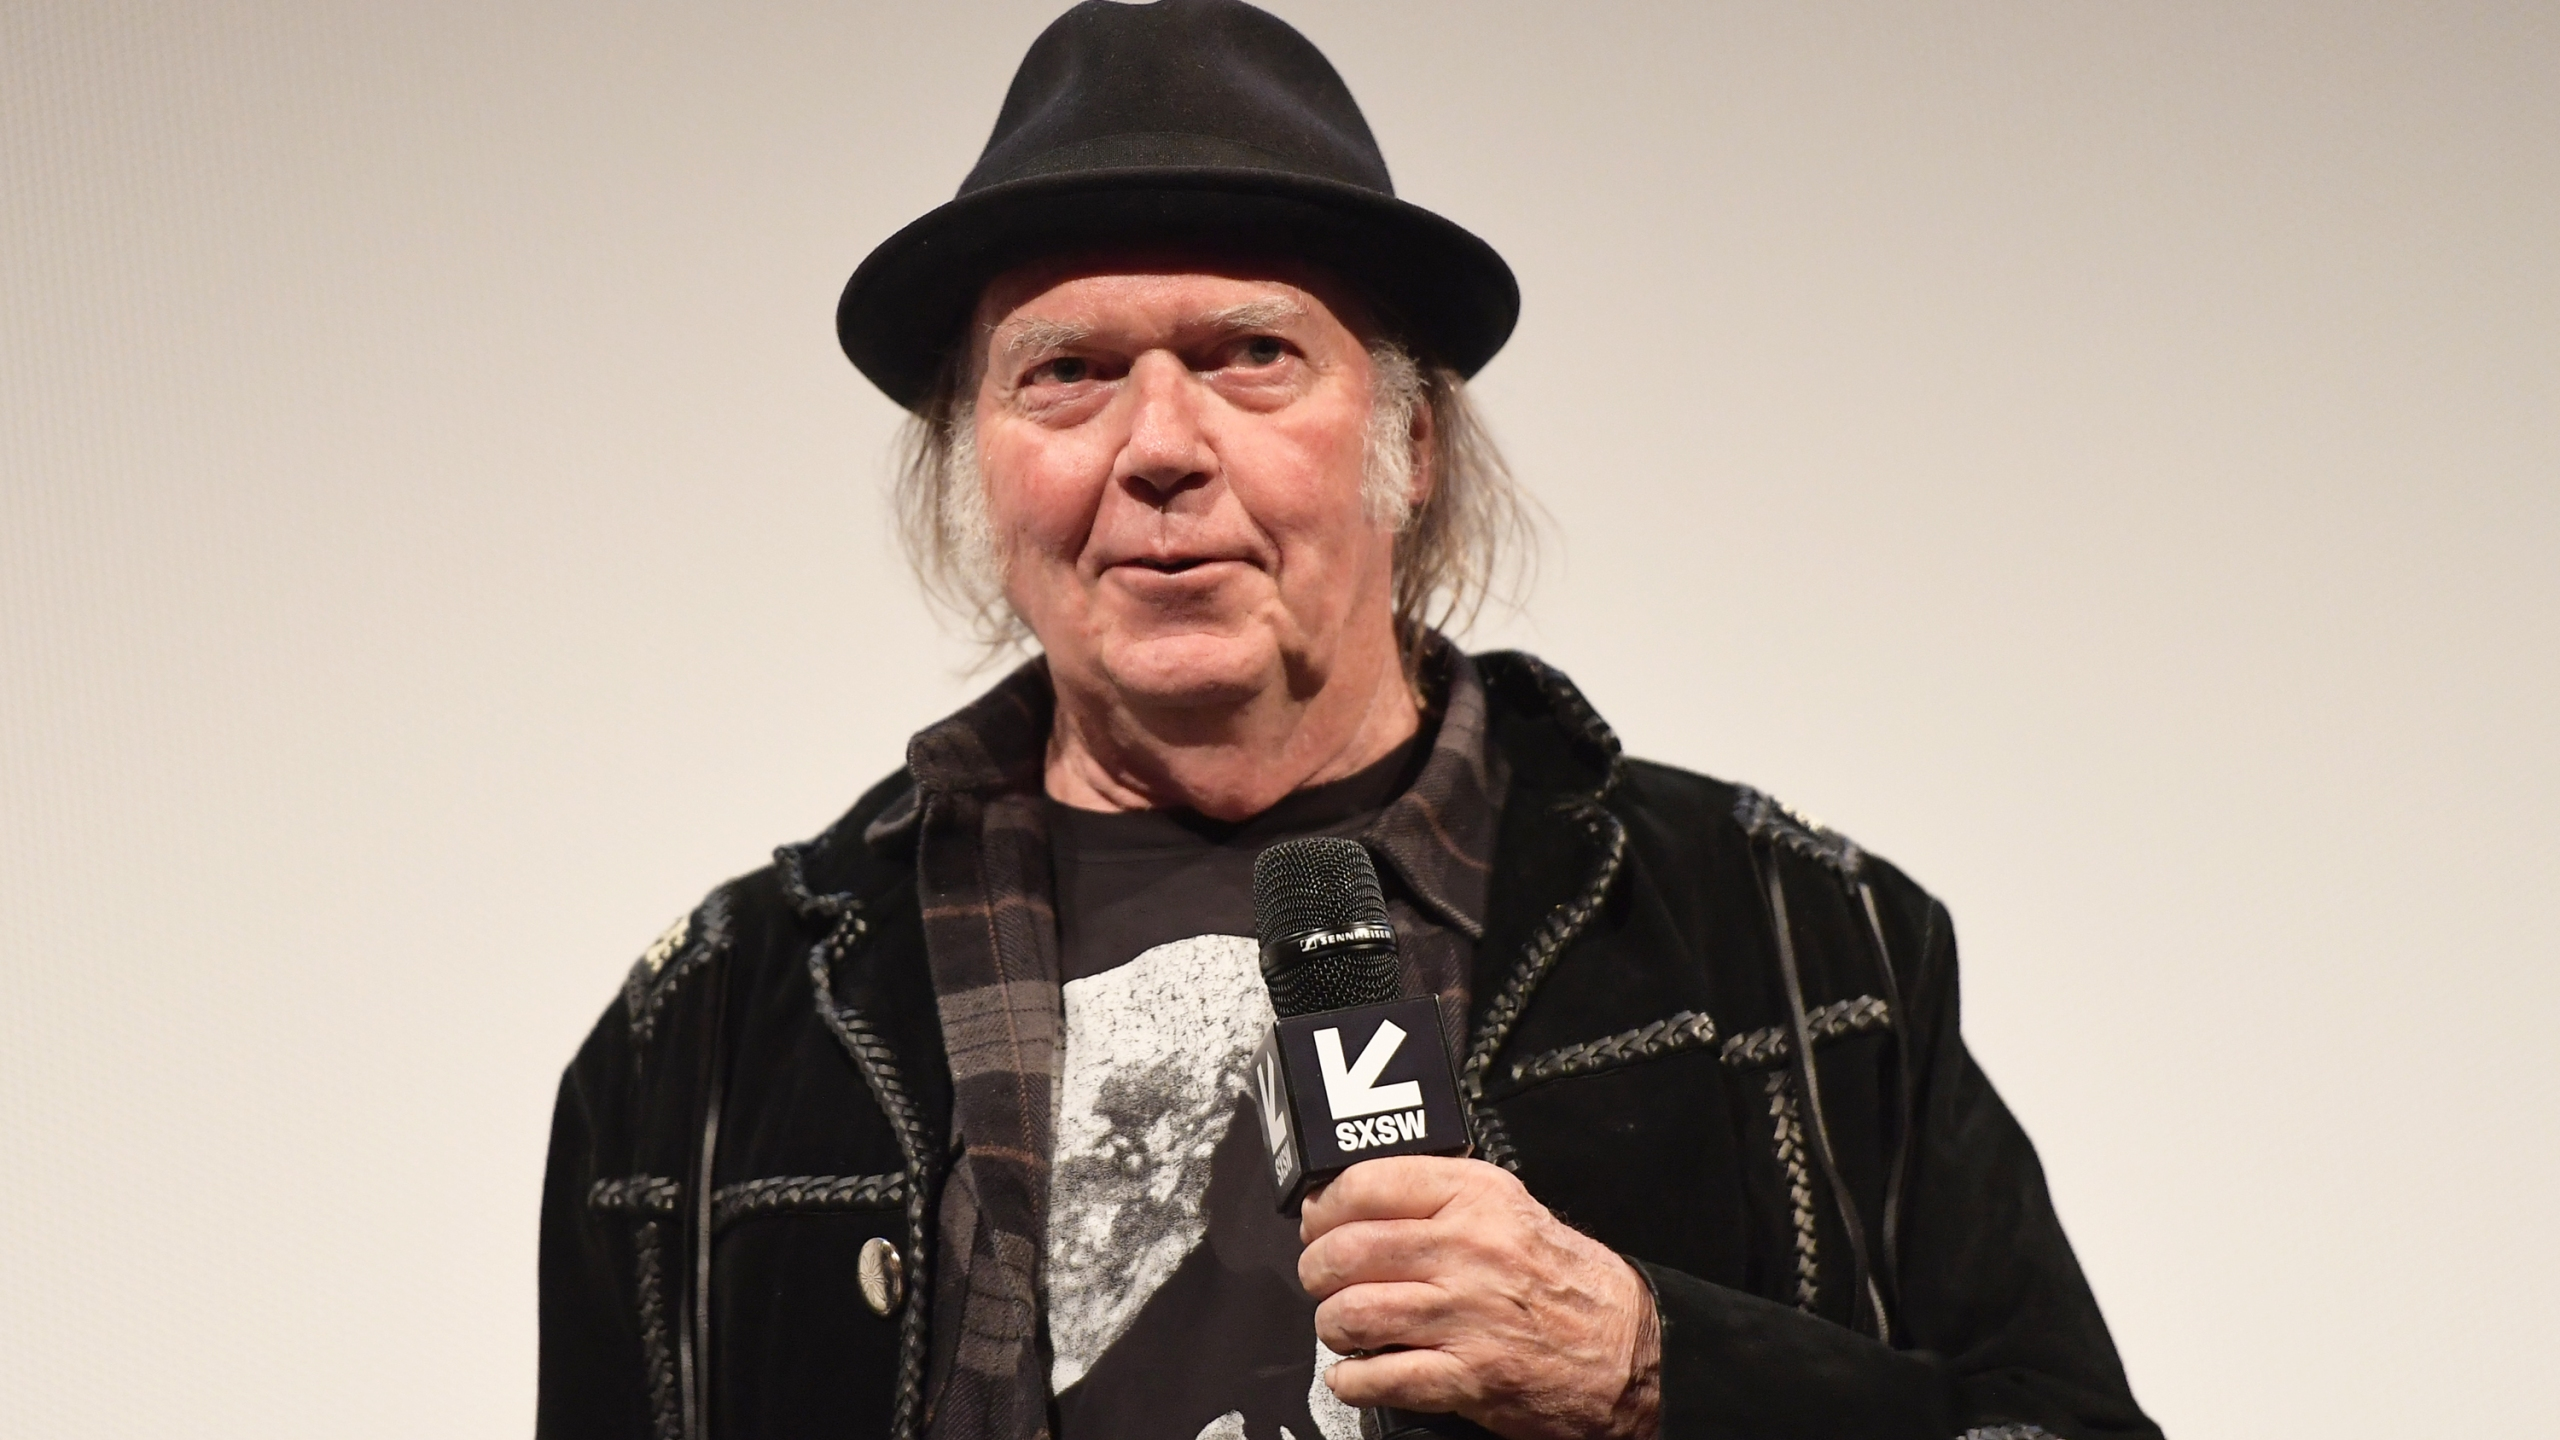 """Neil Young attends the """"Paradox"""" Premiere 2018 SXSW Conference and Festivals at Paramount Theatre on March 15, 2018, in Austin, Texas. (Credit: Matt Winkelmeyer/Getty Images for SXSW)"""